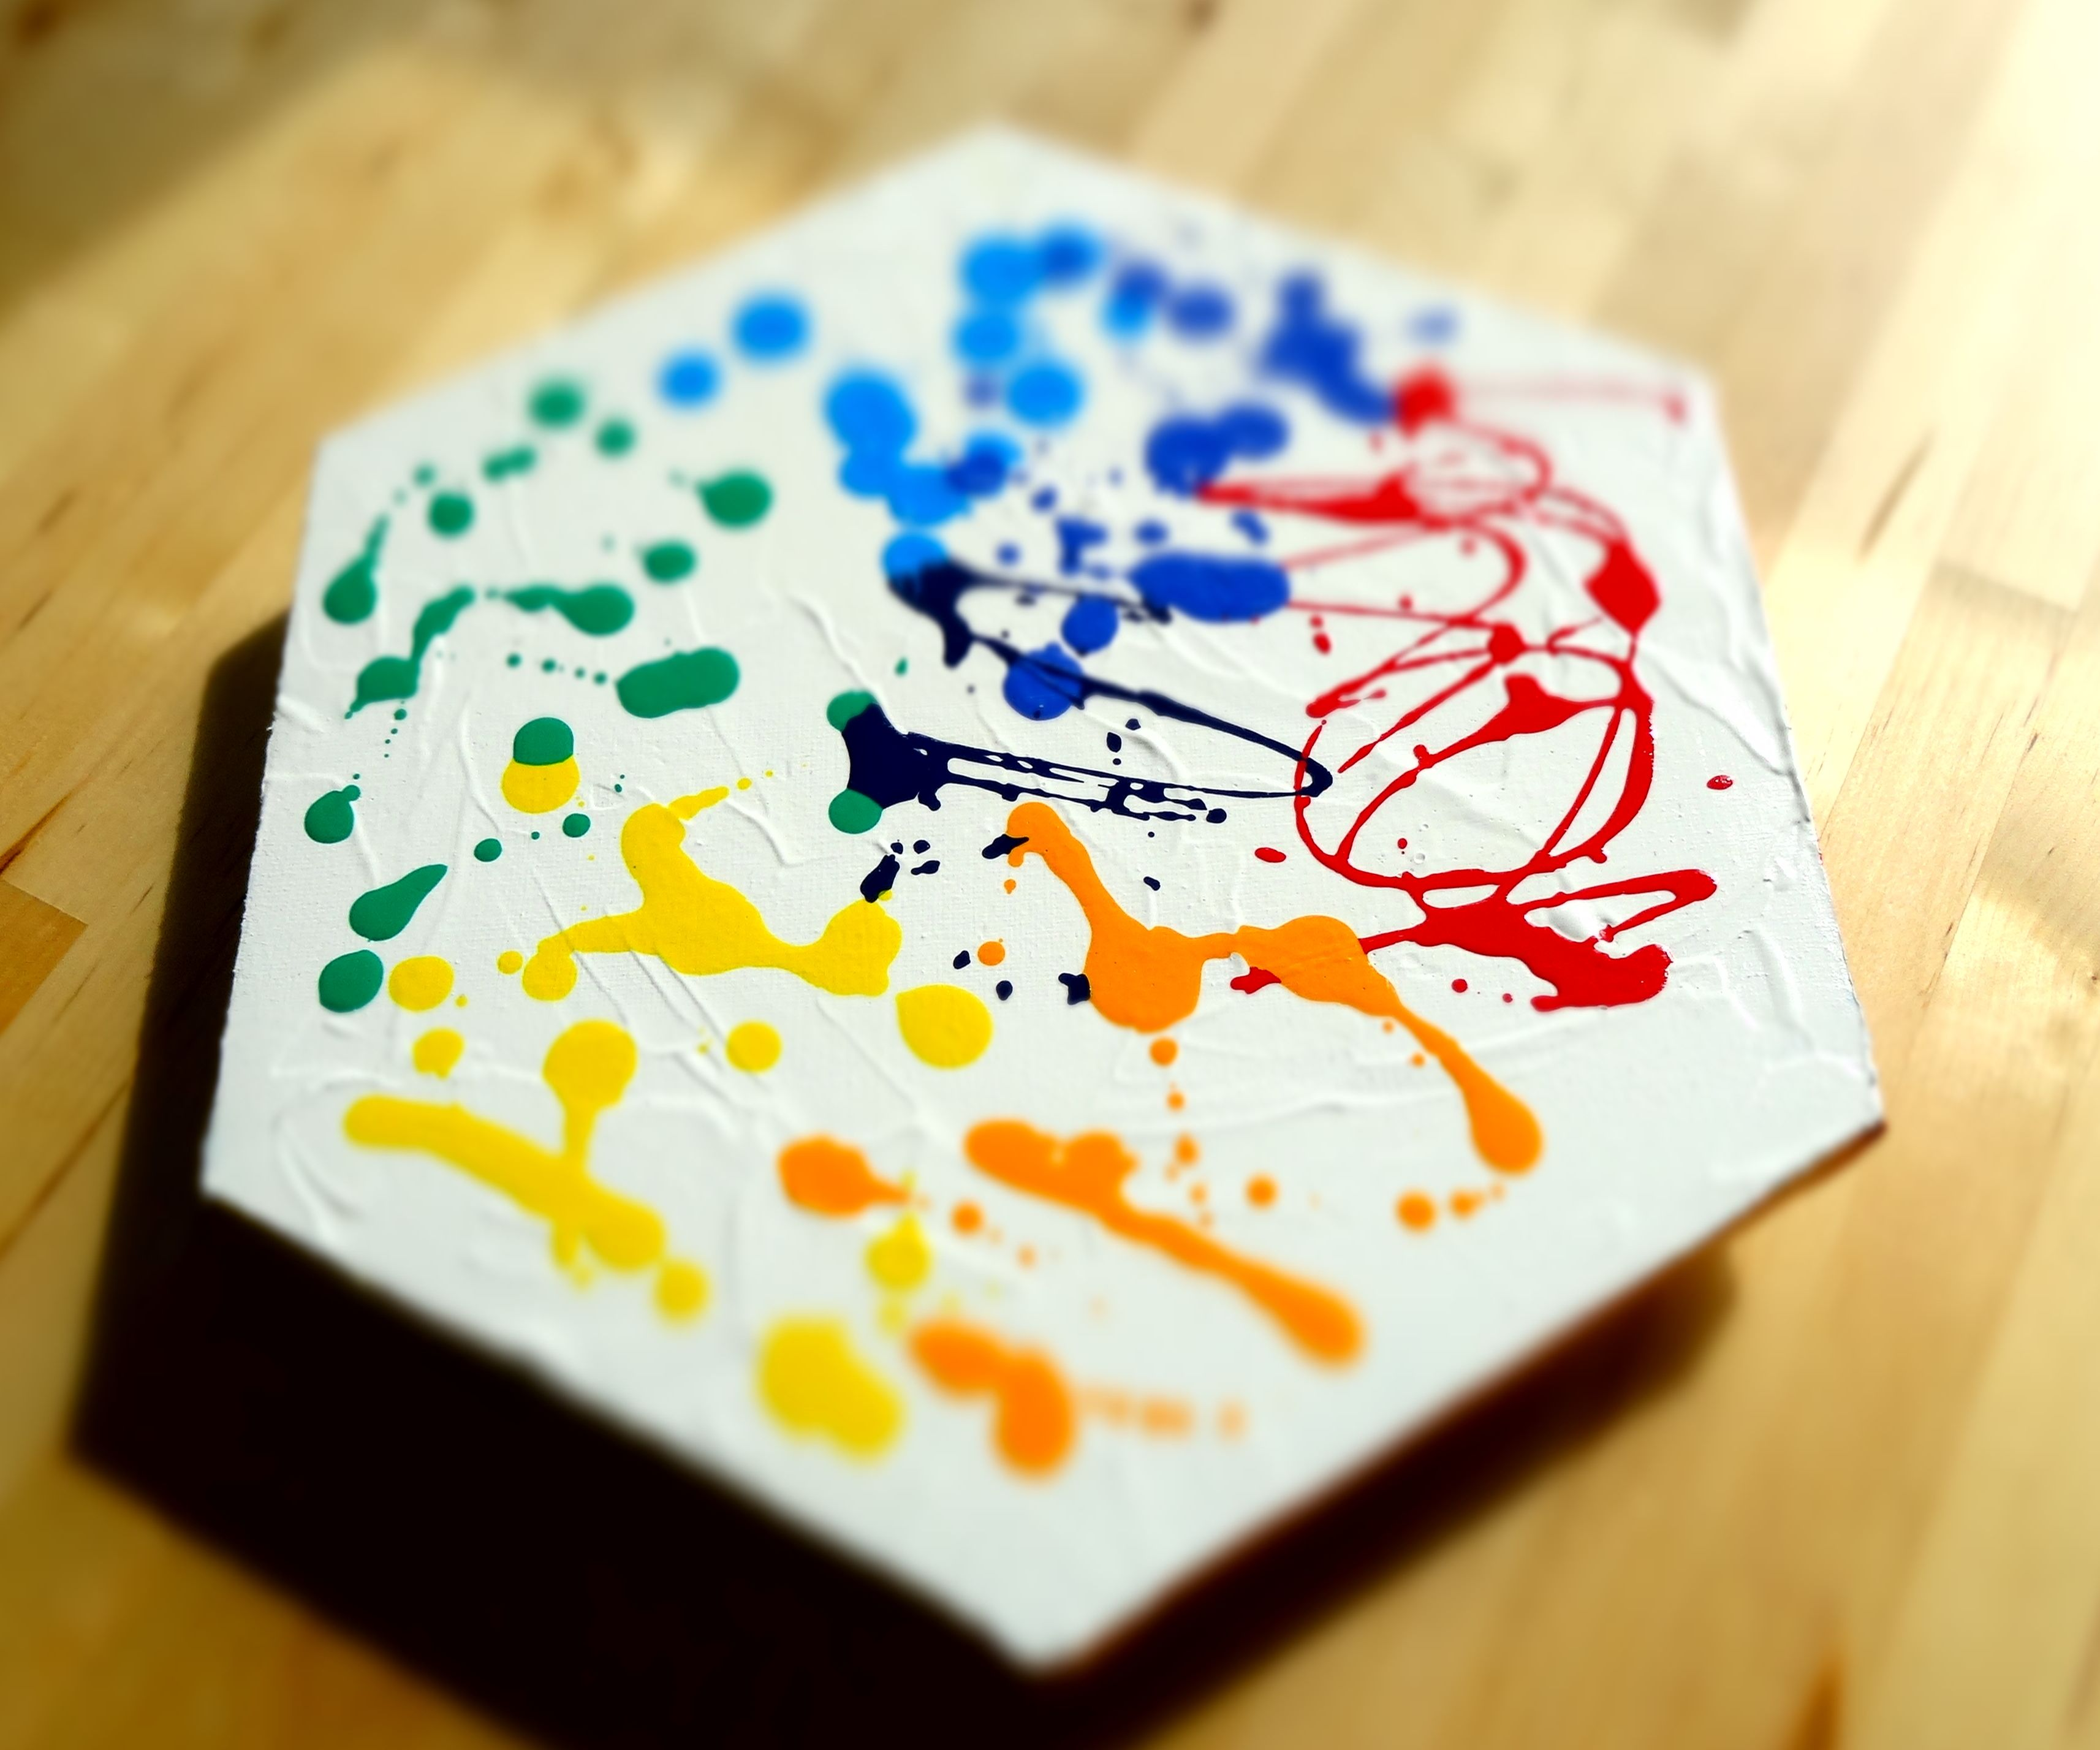 DIY Rainbow Canvas Pad -  How to Make Sound With a Rainbow Colored Canvas and Piezoelectric